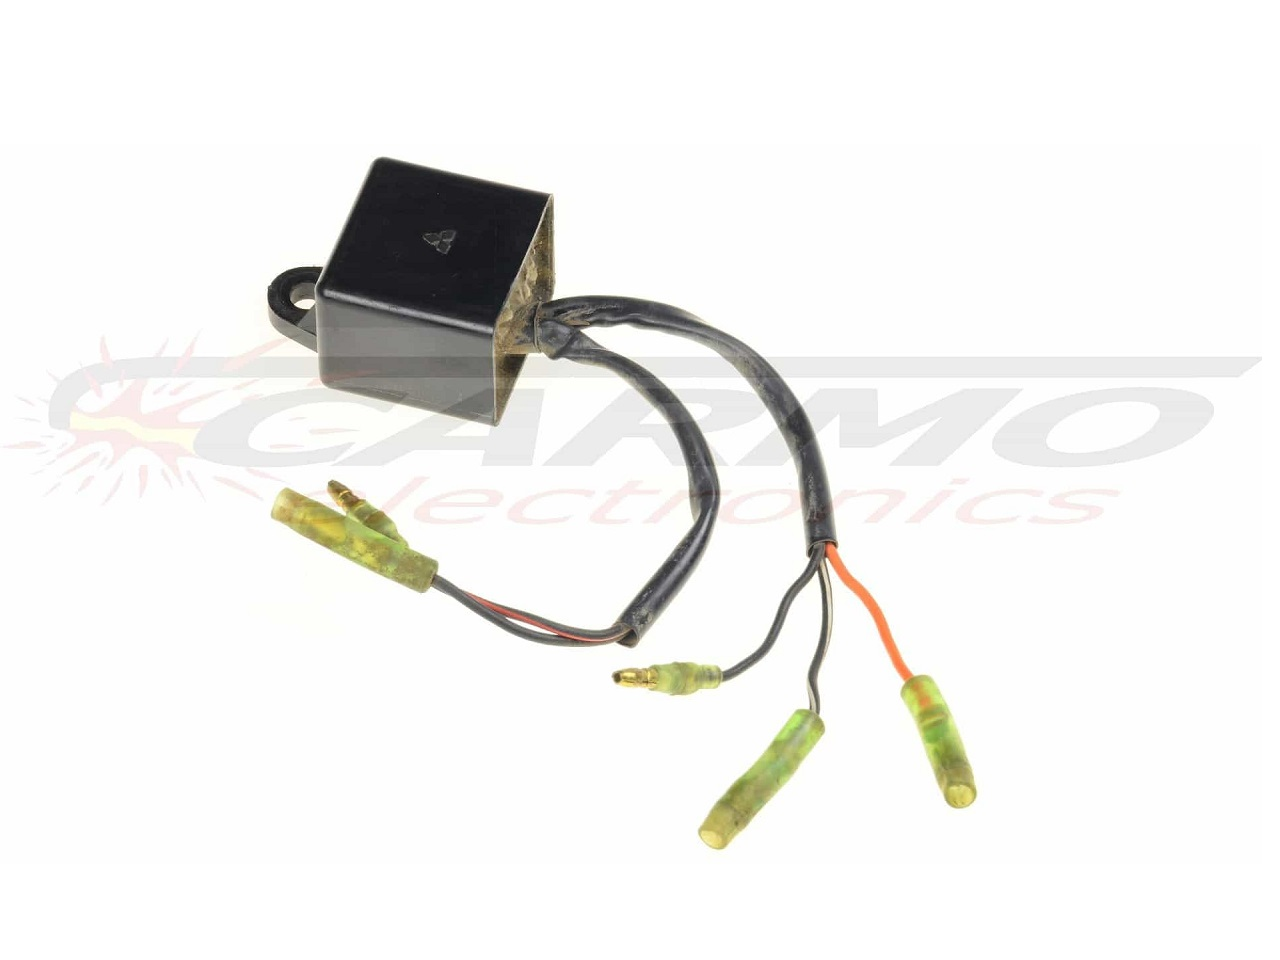 2006 toyota avalon ignition coil diagram narva led trailer lights wiring igniter ecm ~ elsavadorla